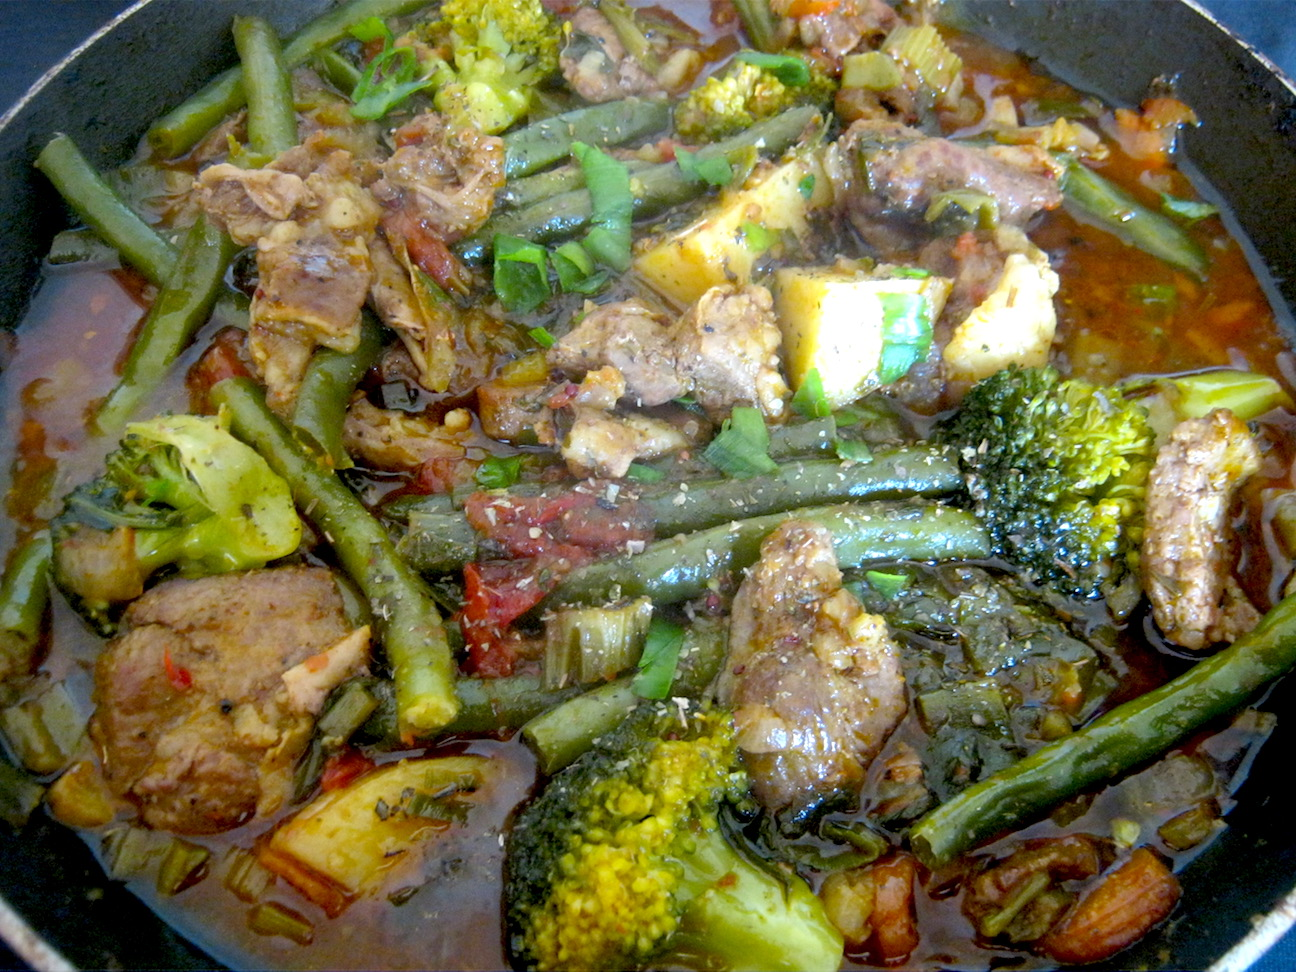 Cape mutton stew in a skillet